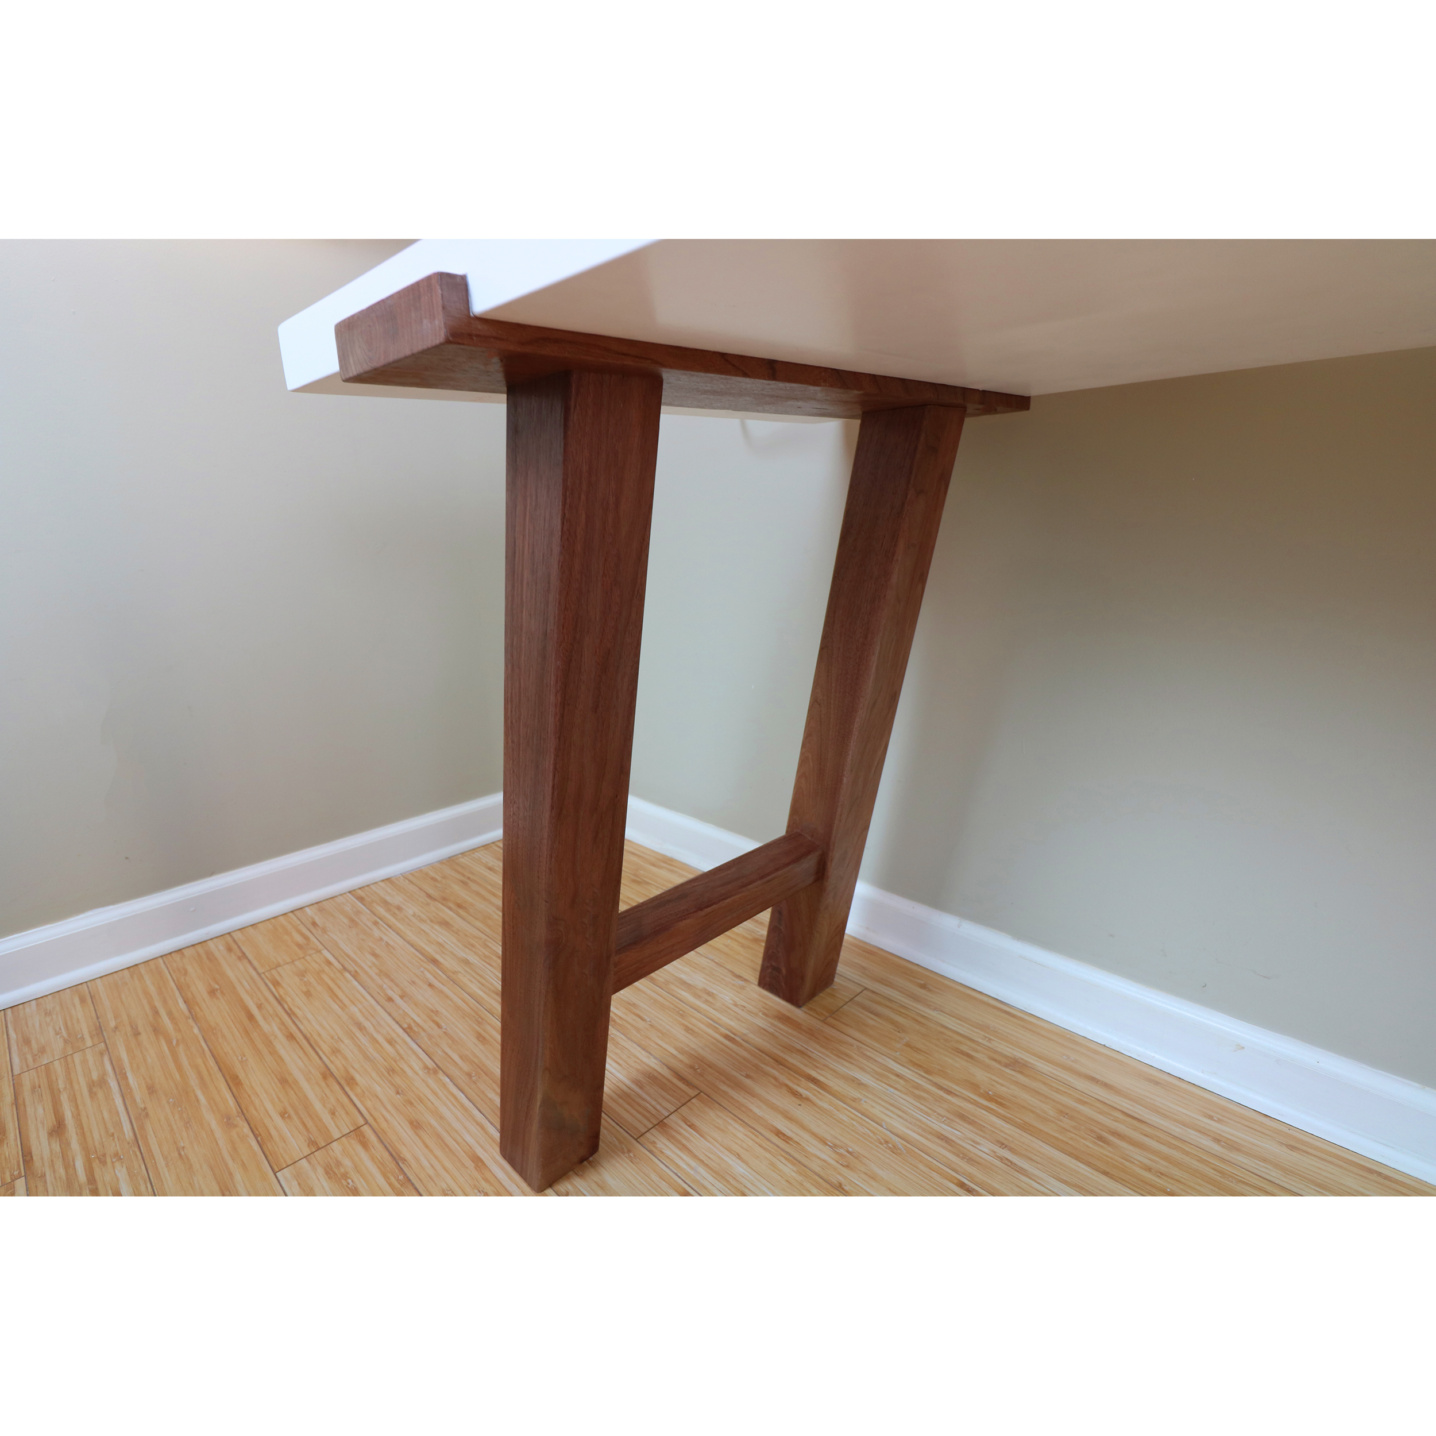 Quality desk construction with a modern flair